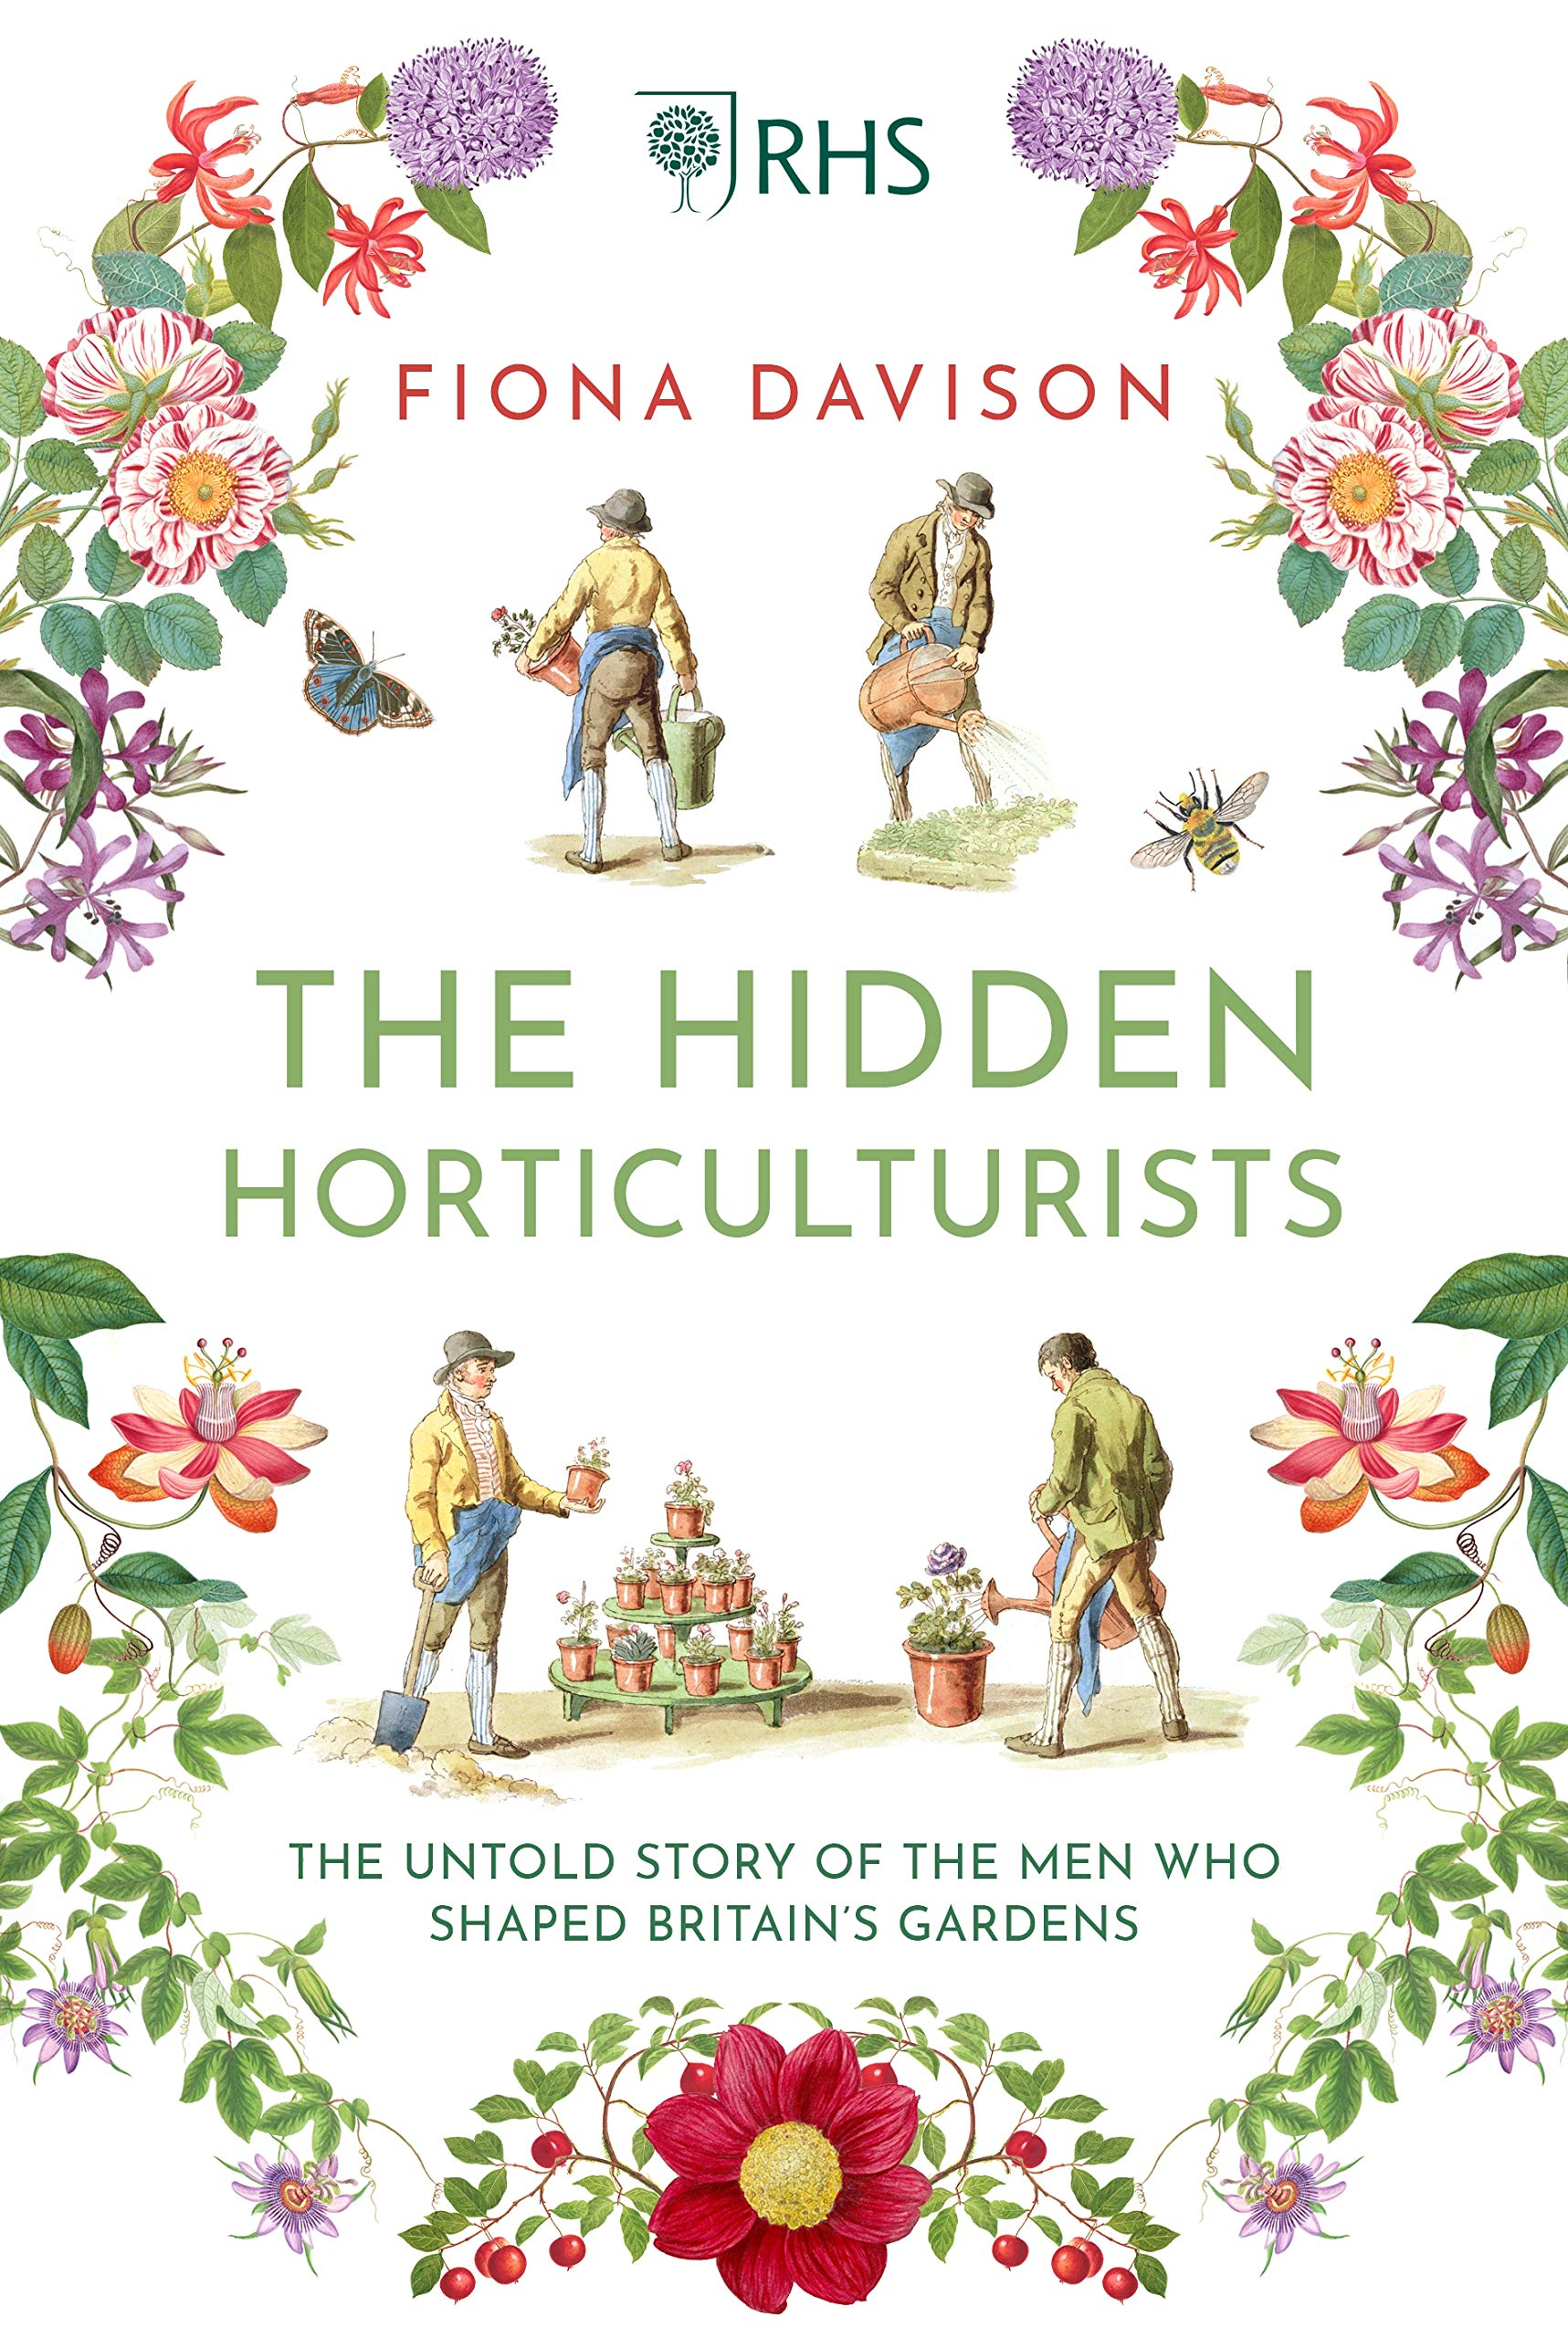 The Hidden Horticulturists: The Untold Story of the Men who